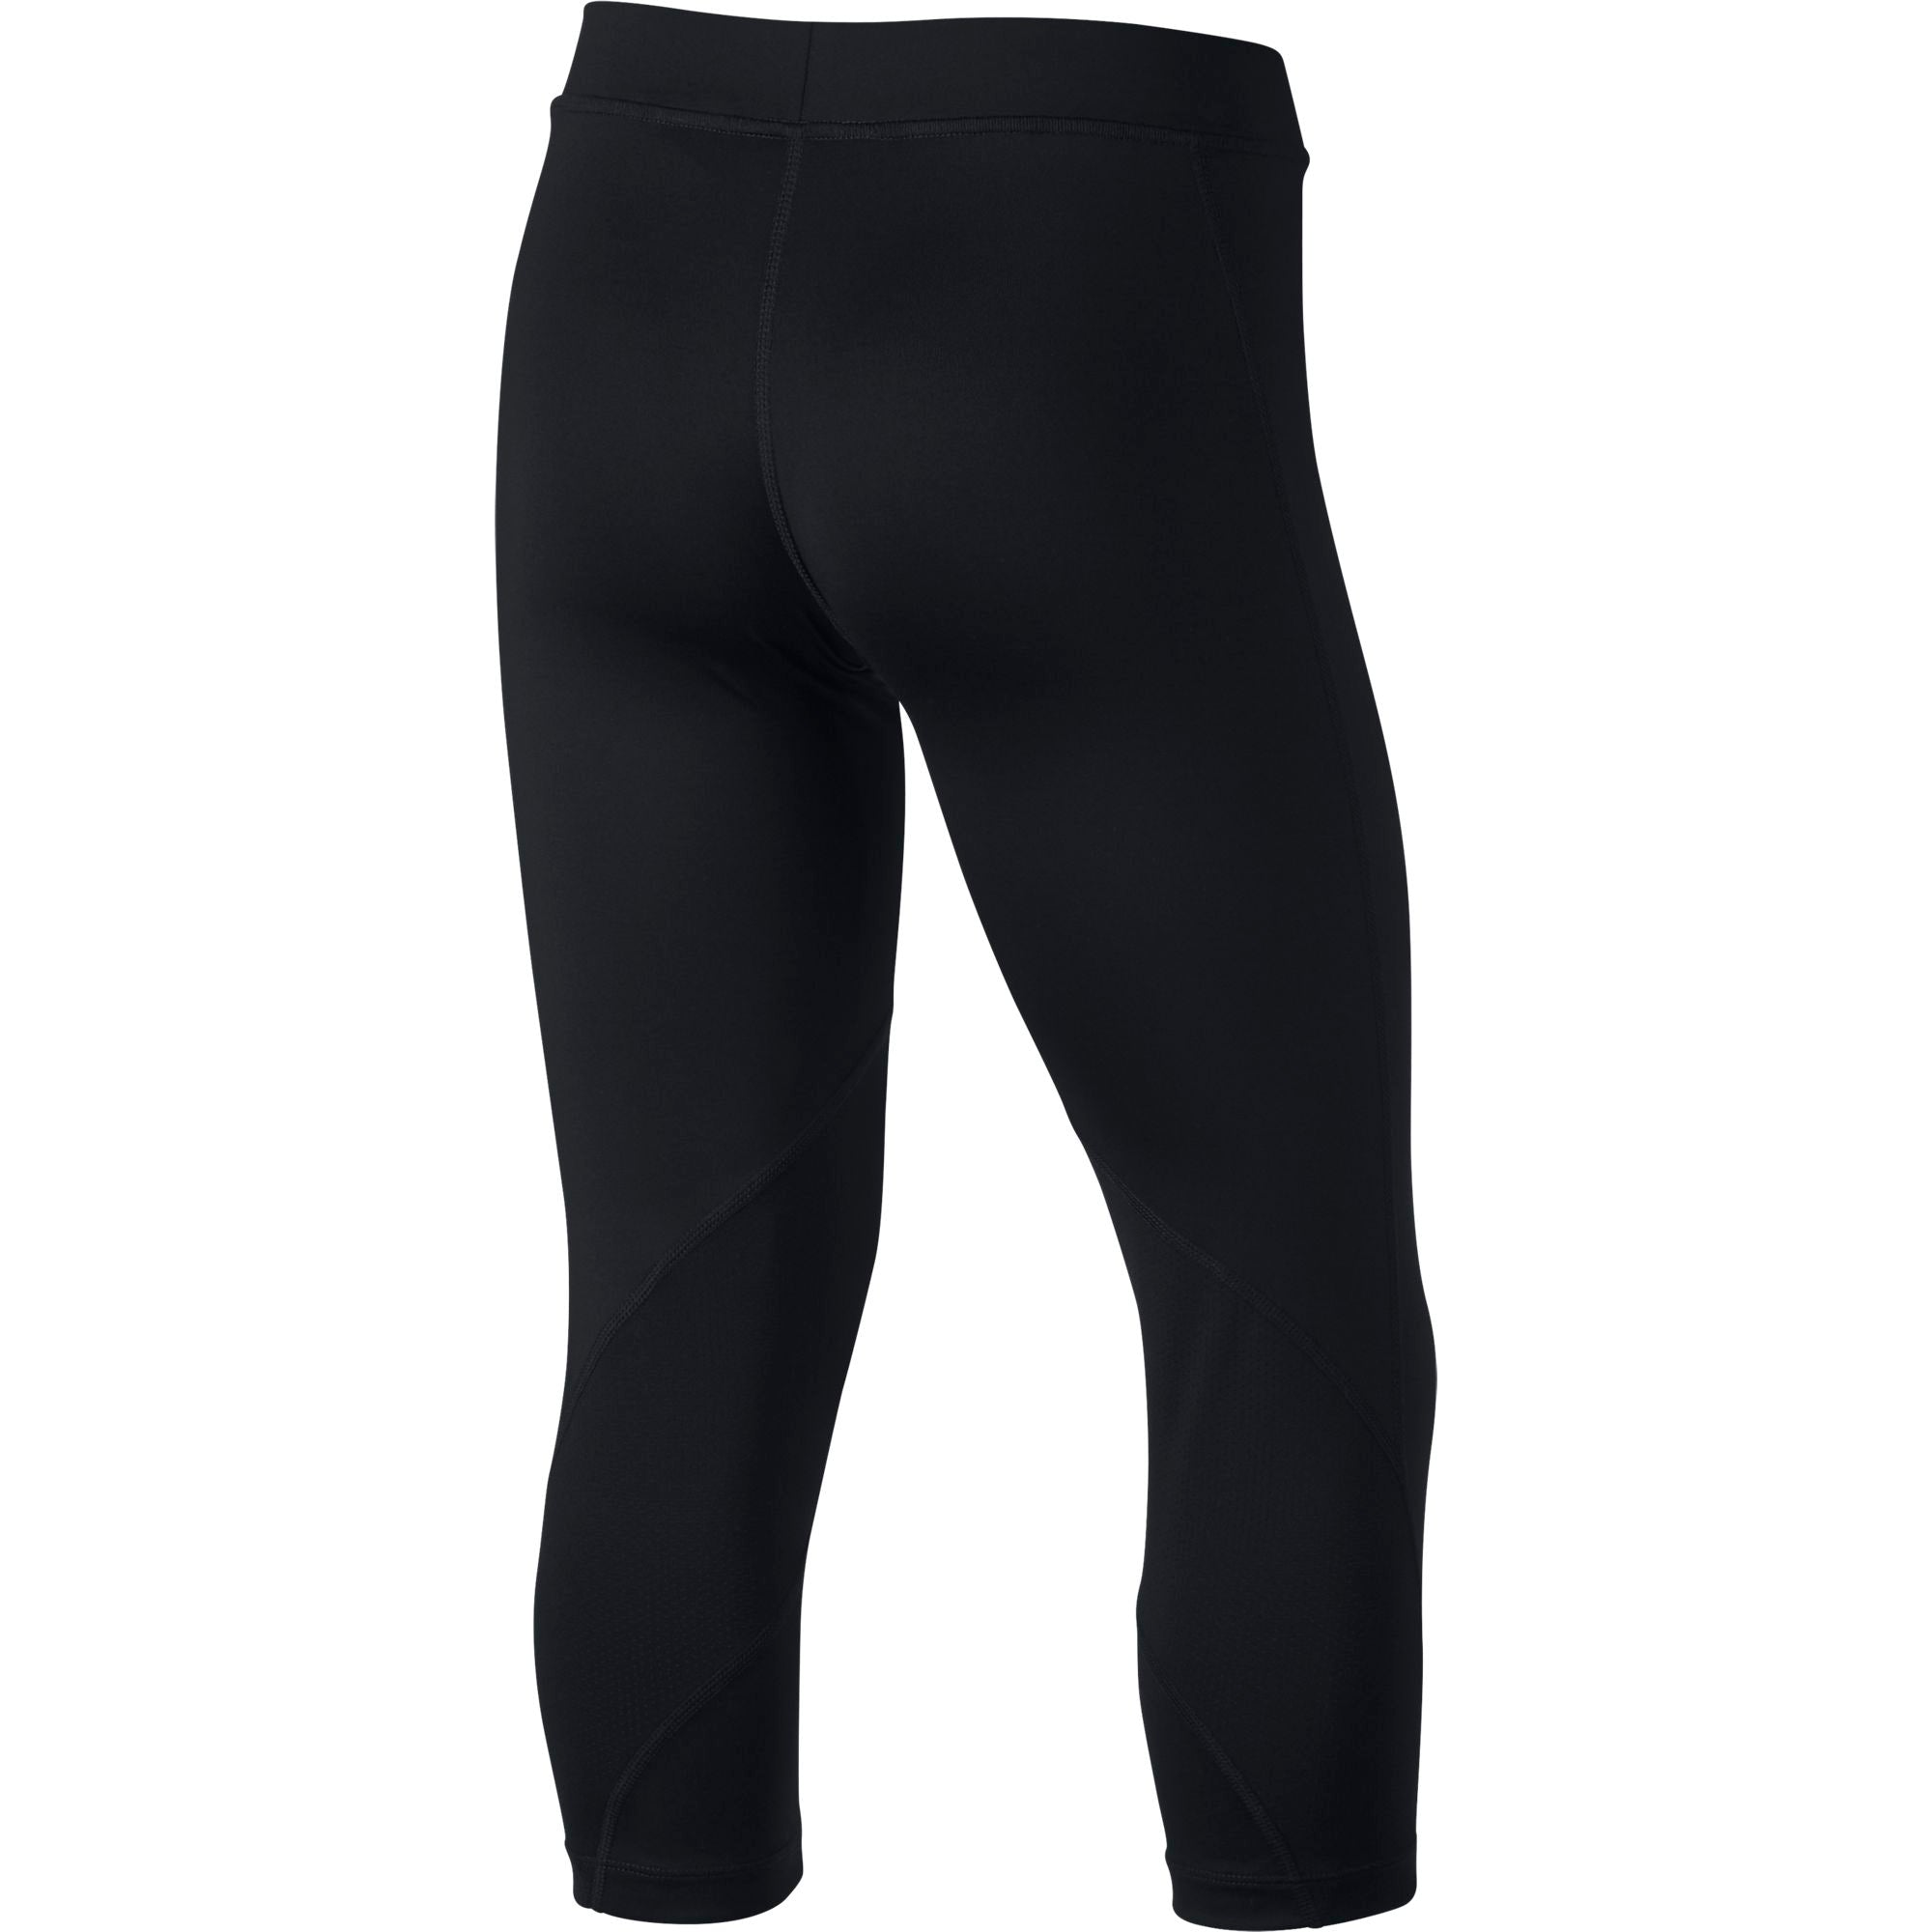 Nike Girls' Training Pro Capris - Black/White